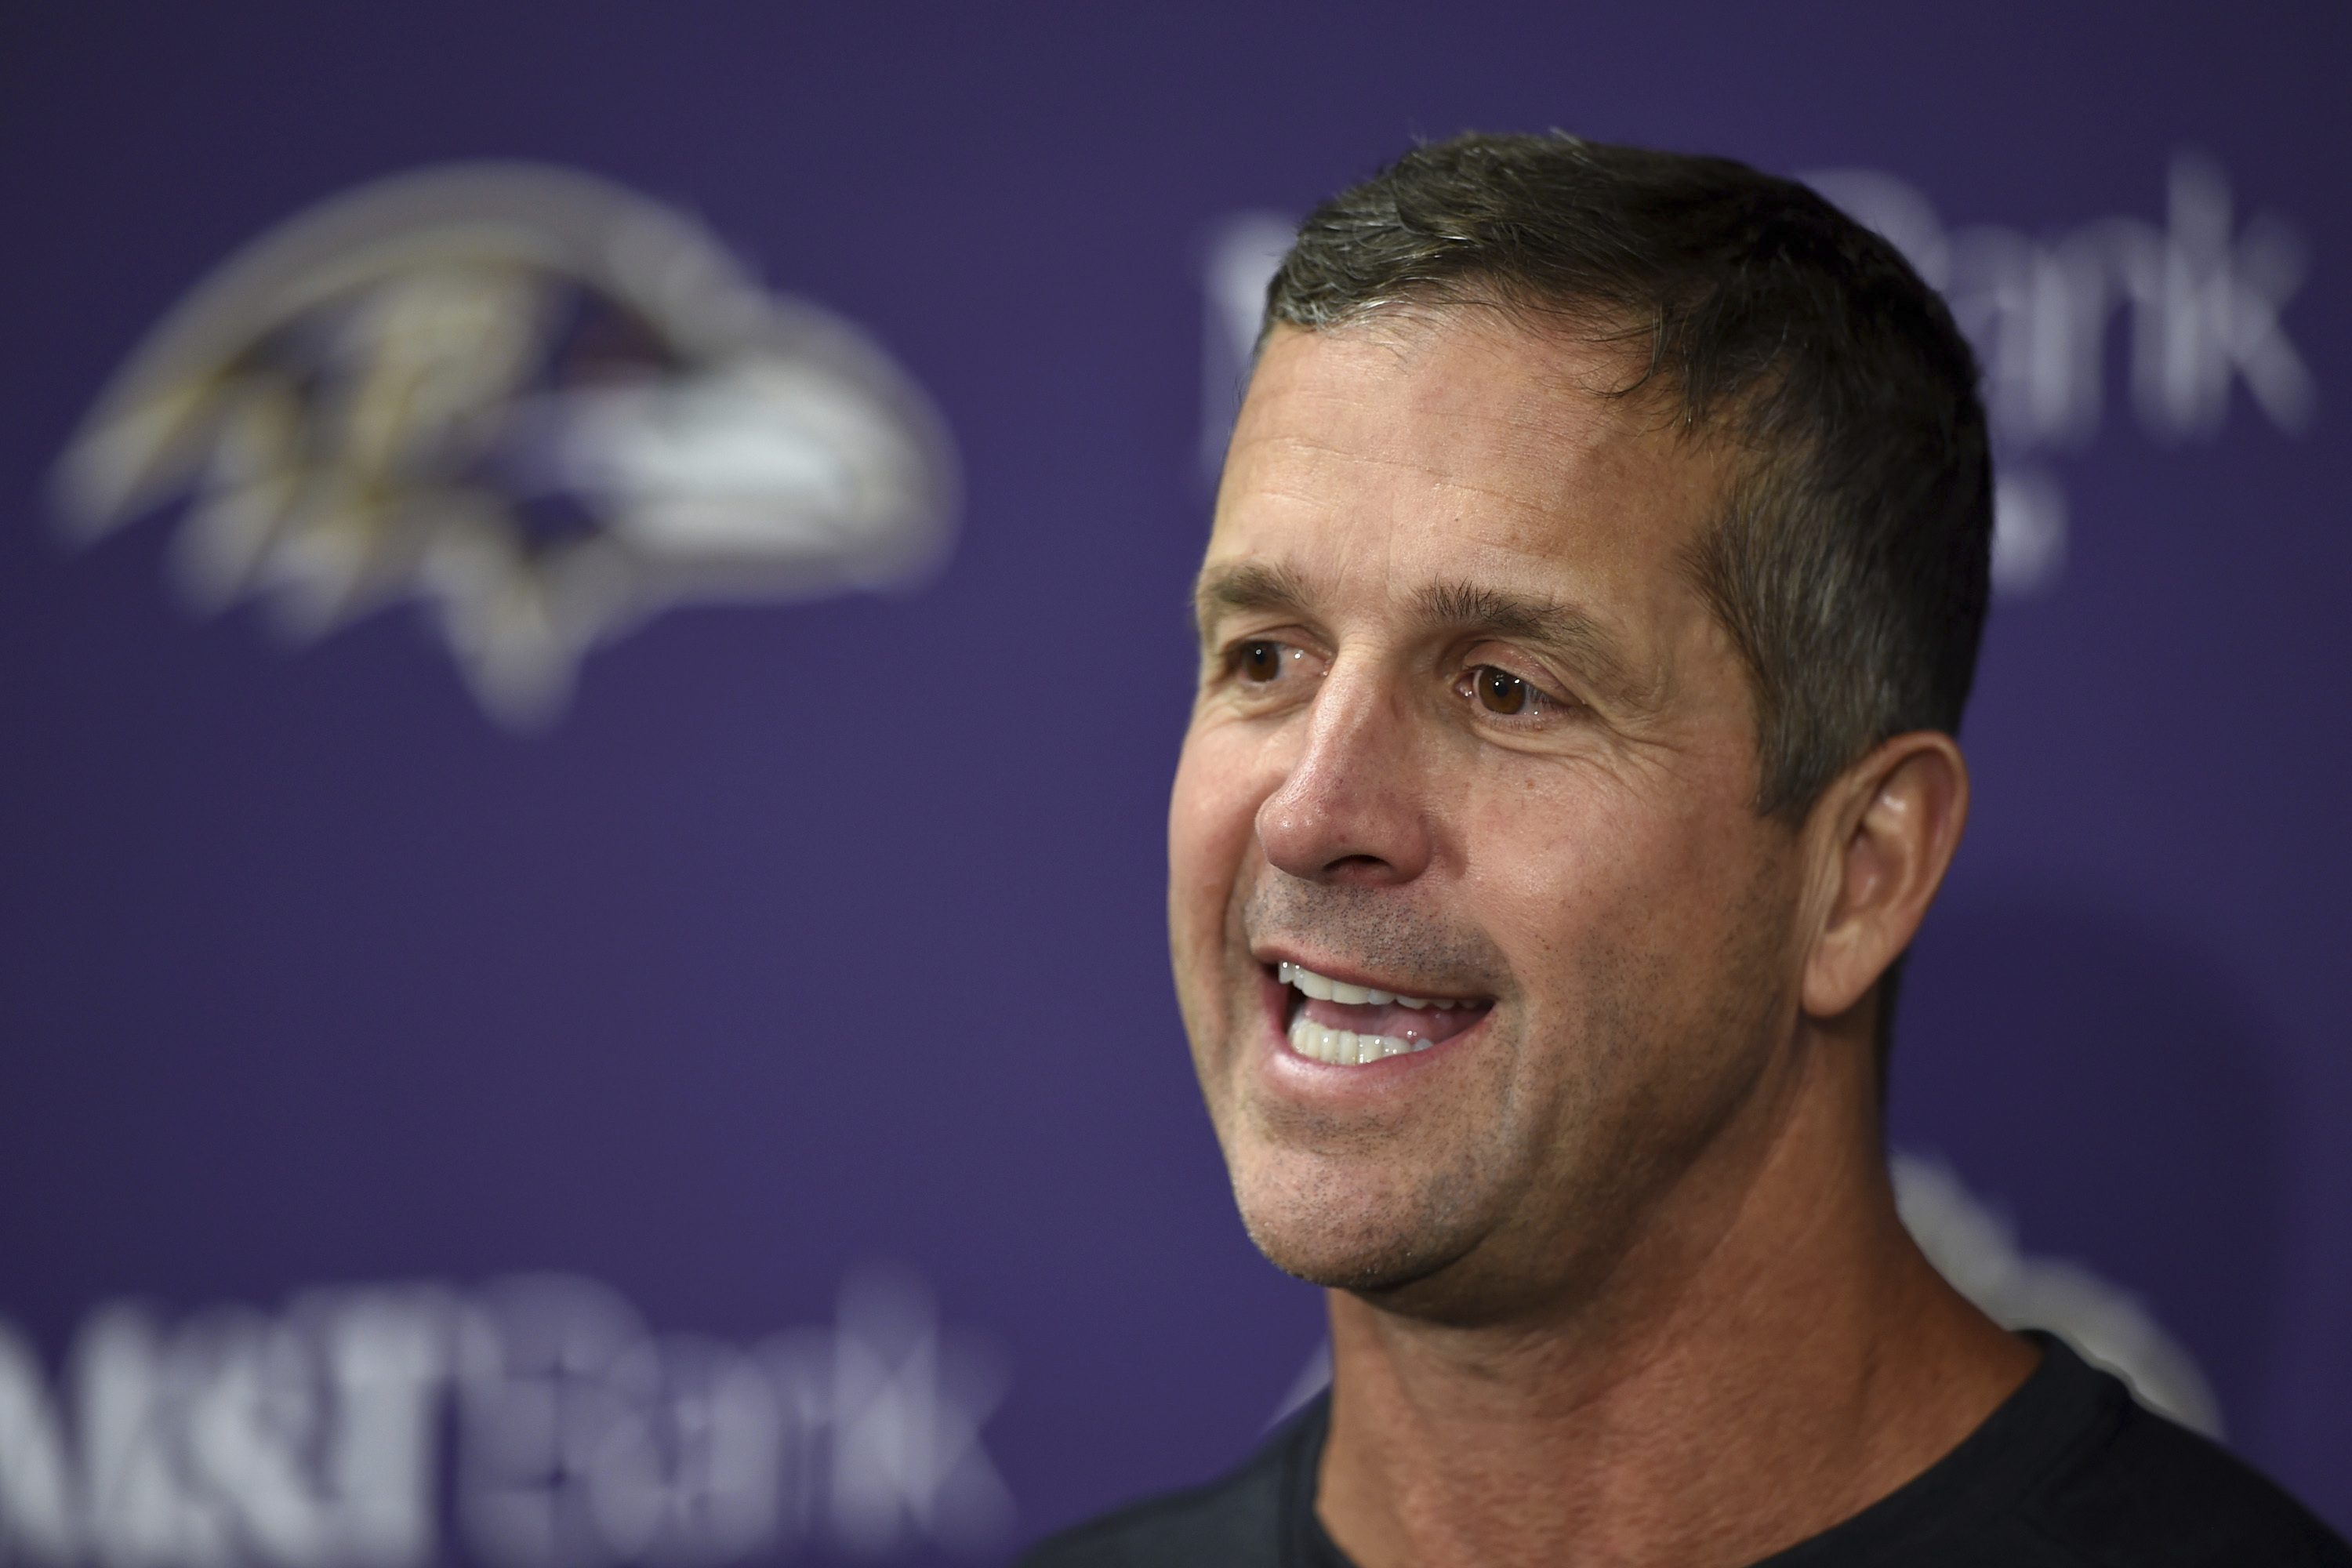 As Baltimore Ravens head to Philadelphia, John Harbaugh has a Doug Pederson story to share